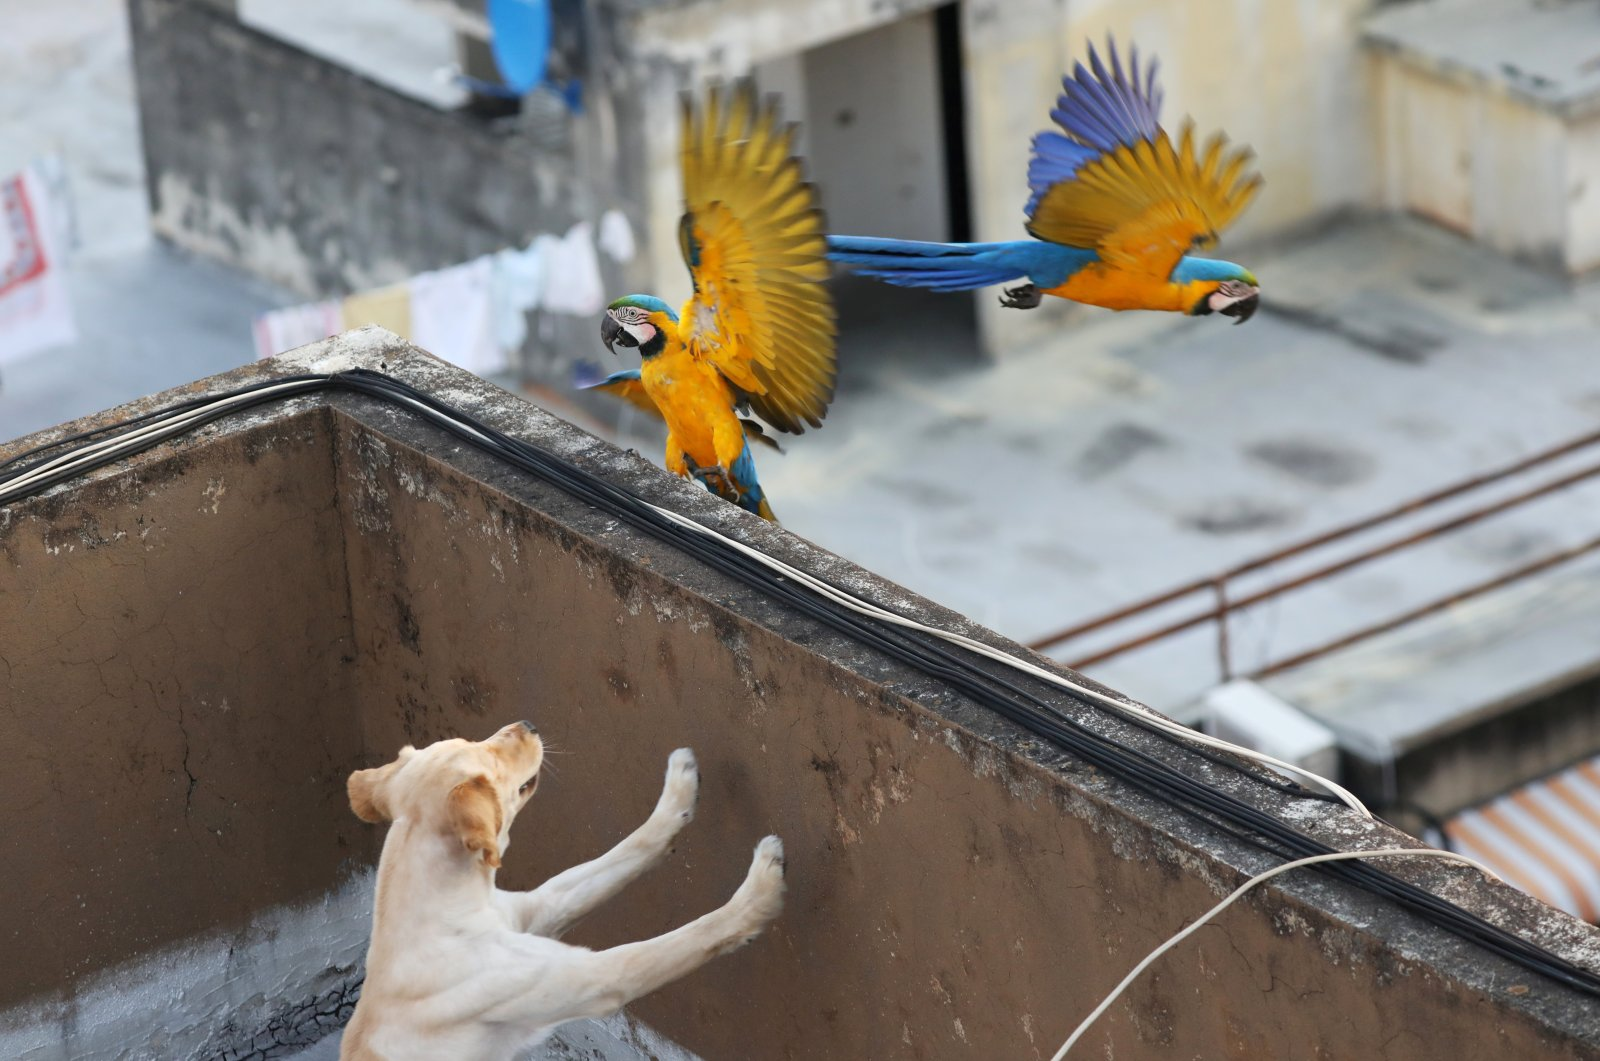 A dog reacts as macaws fly near a rooftop during a nationwide quarantine in Caracas, Venezuela due to the coronavirus outbreak that spread across the world, April 7, 2020. (Reuters Photo)